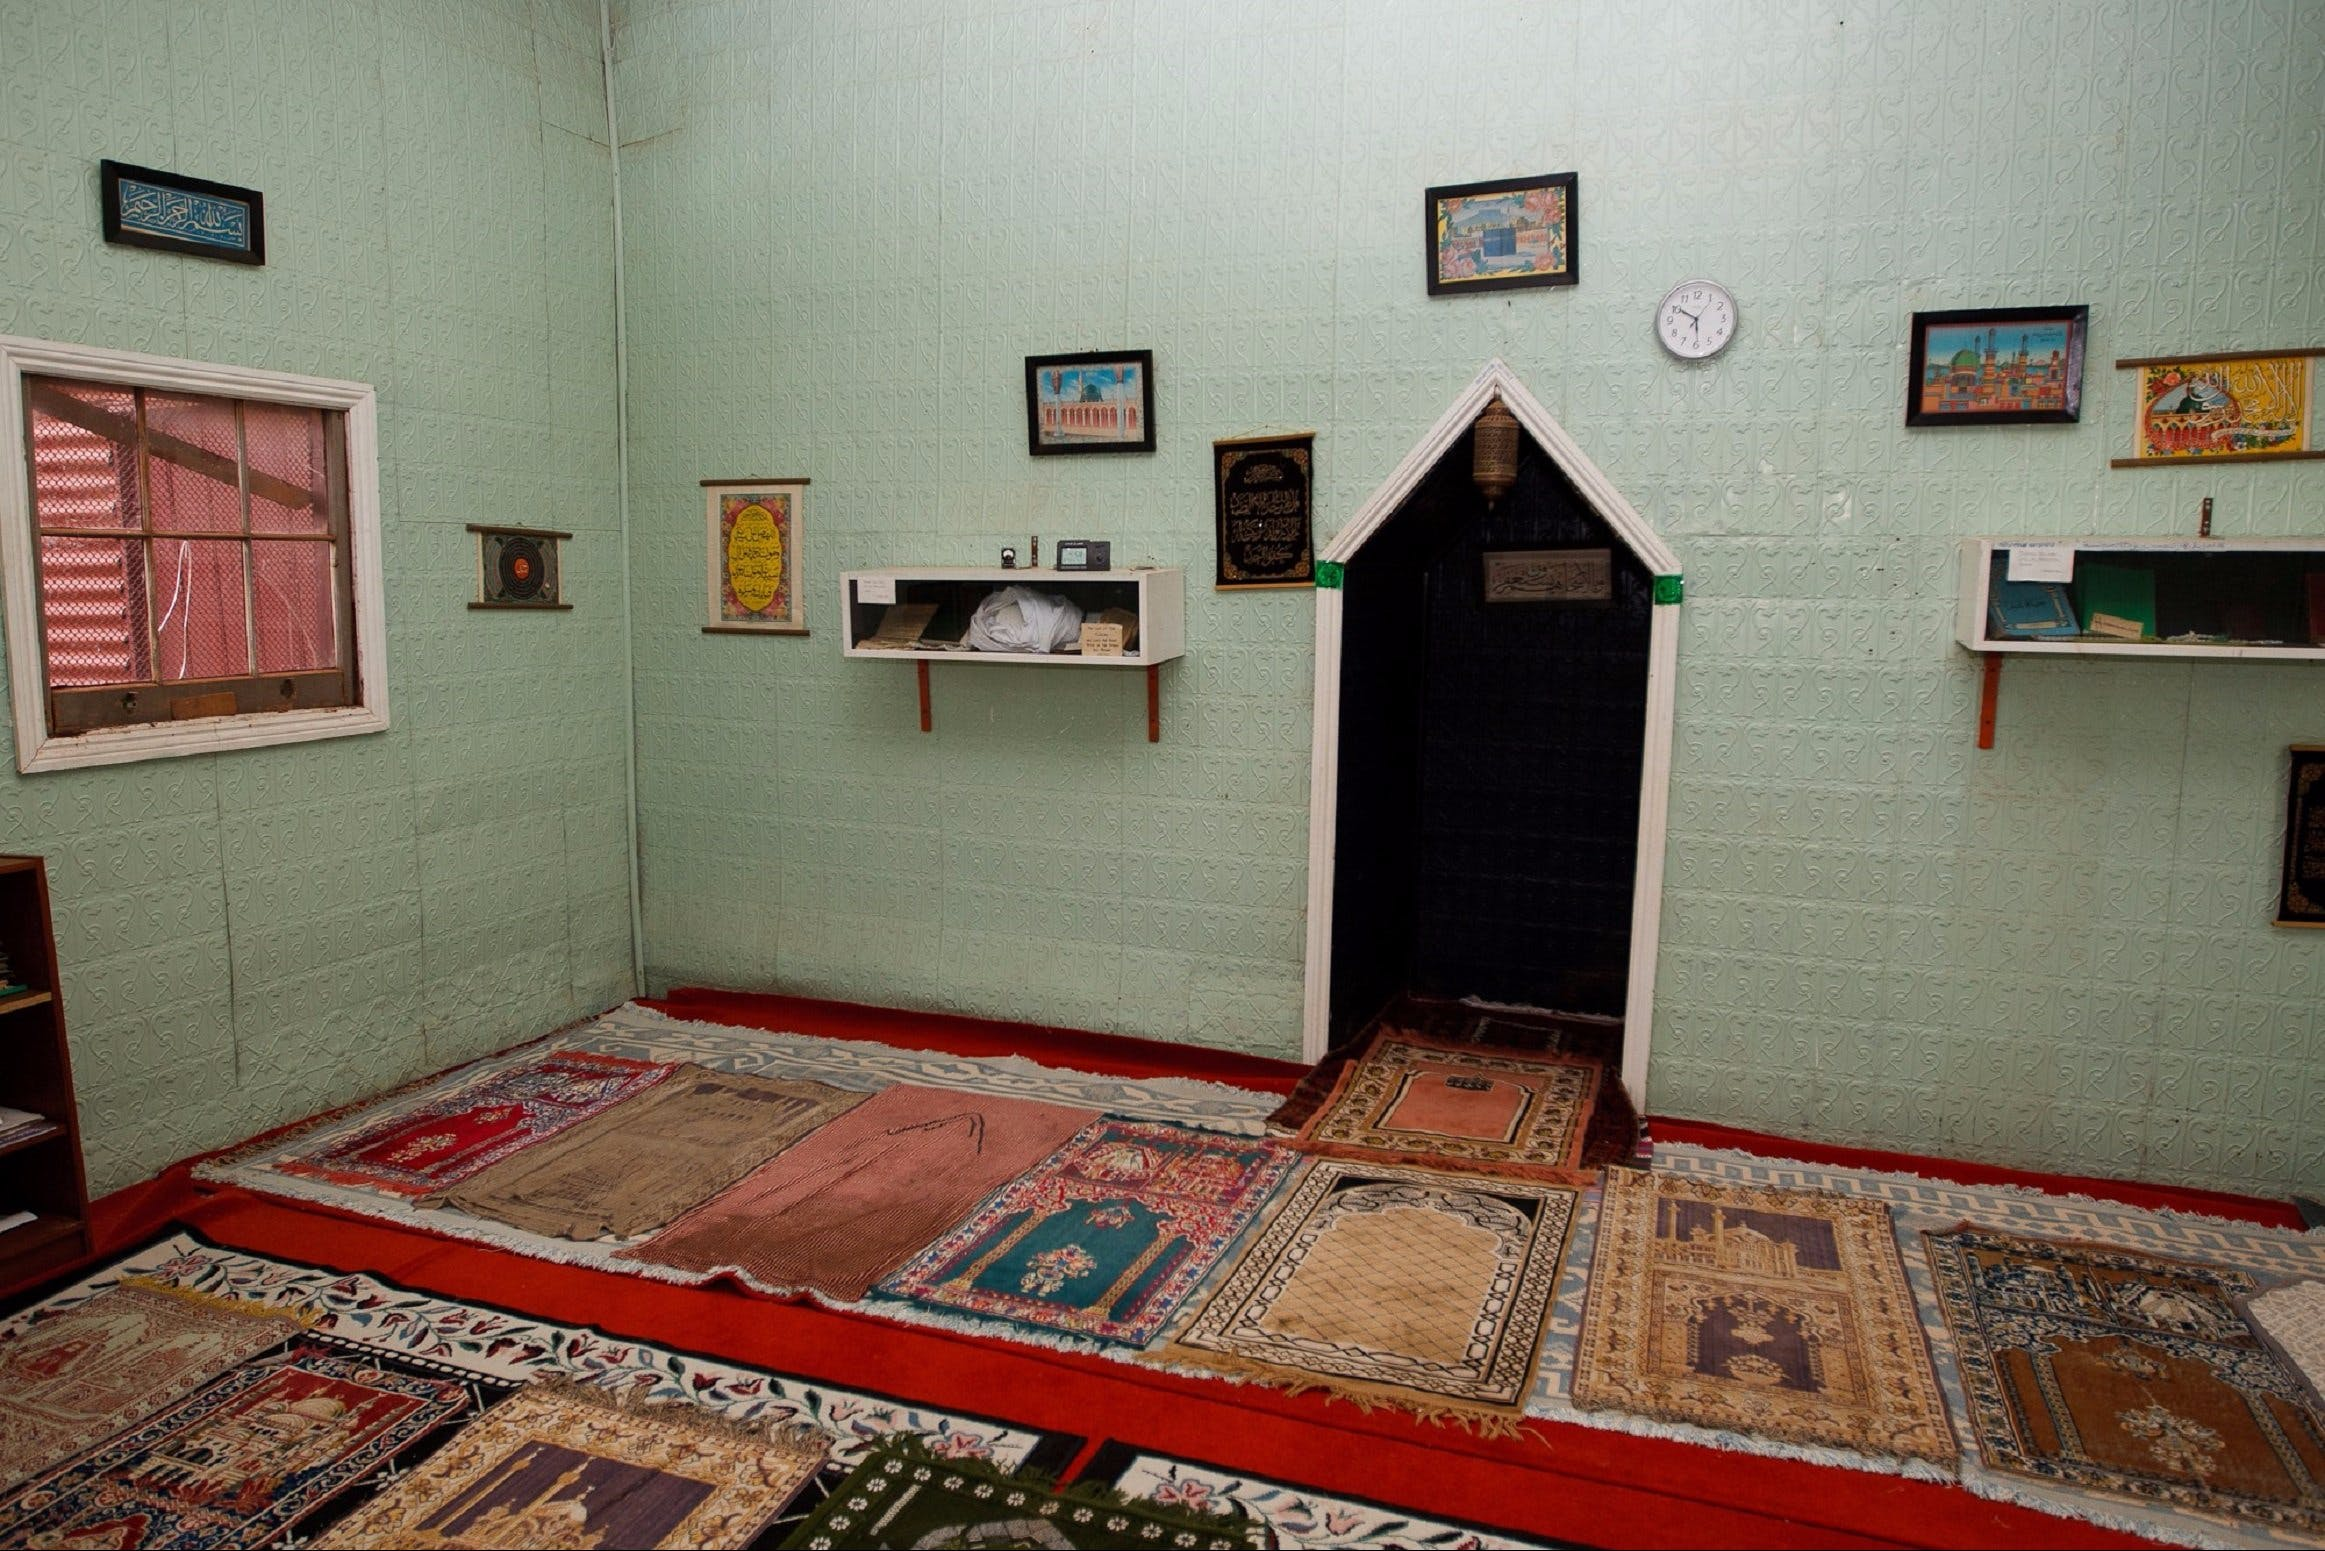 Afghan Mosque - Accommodation Broken Hill